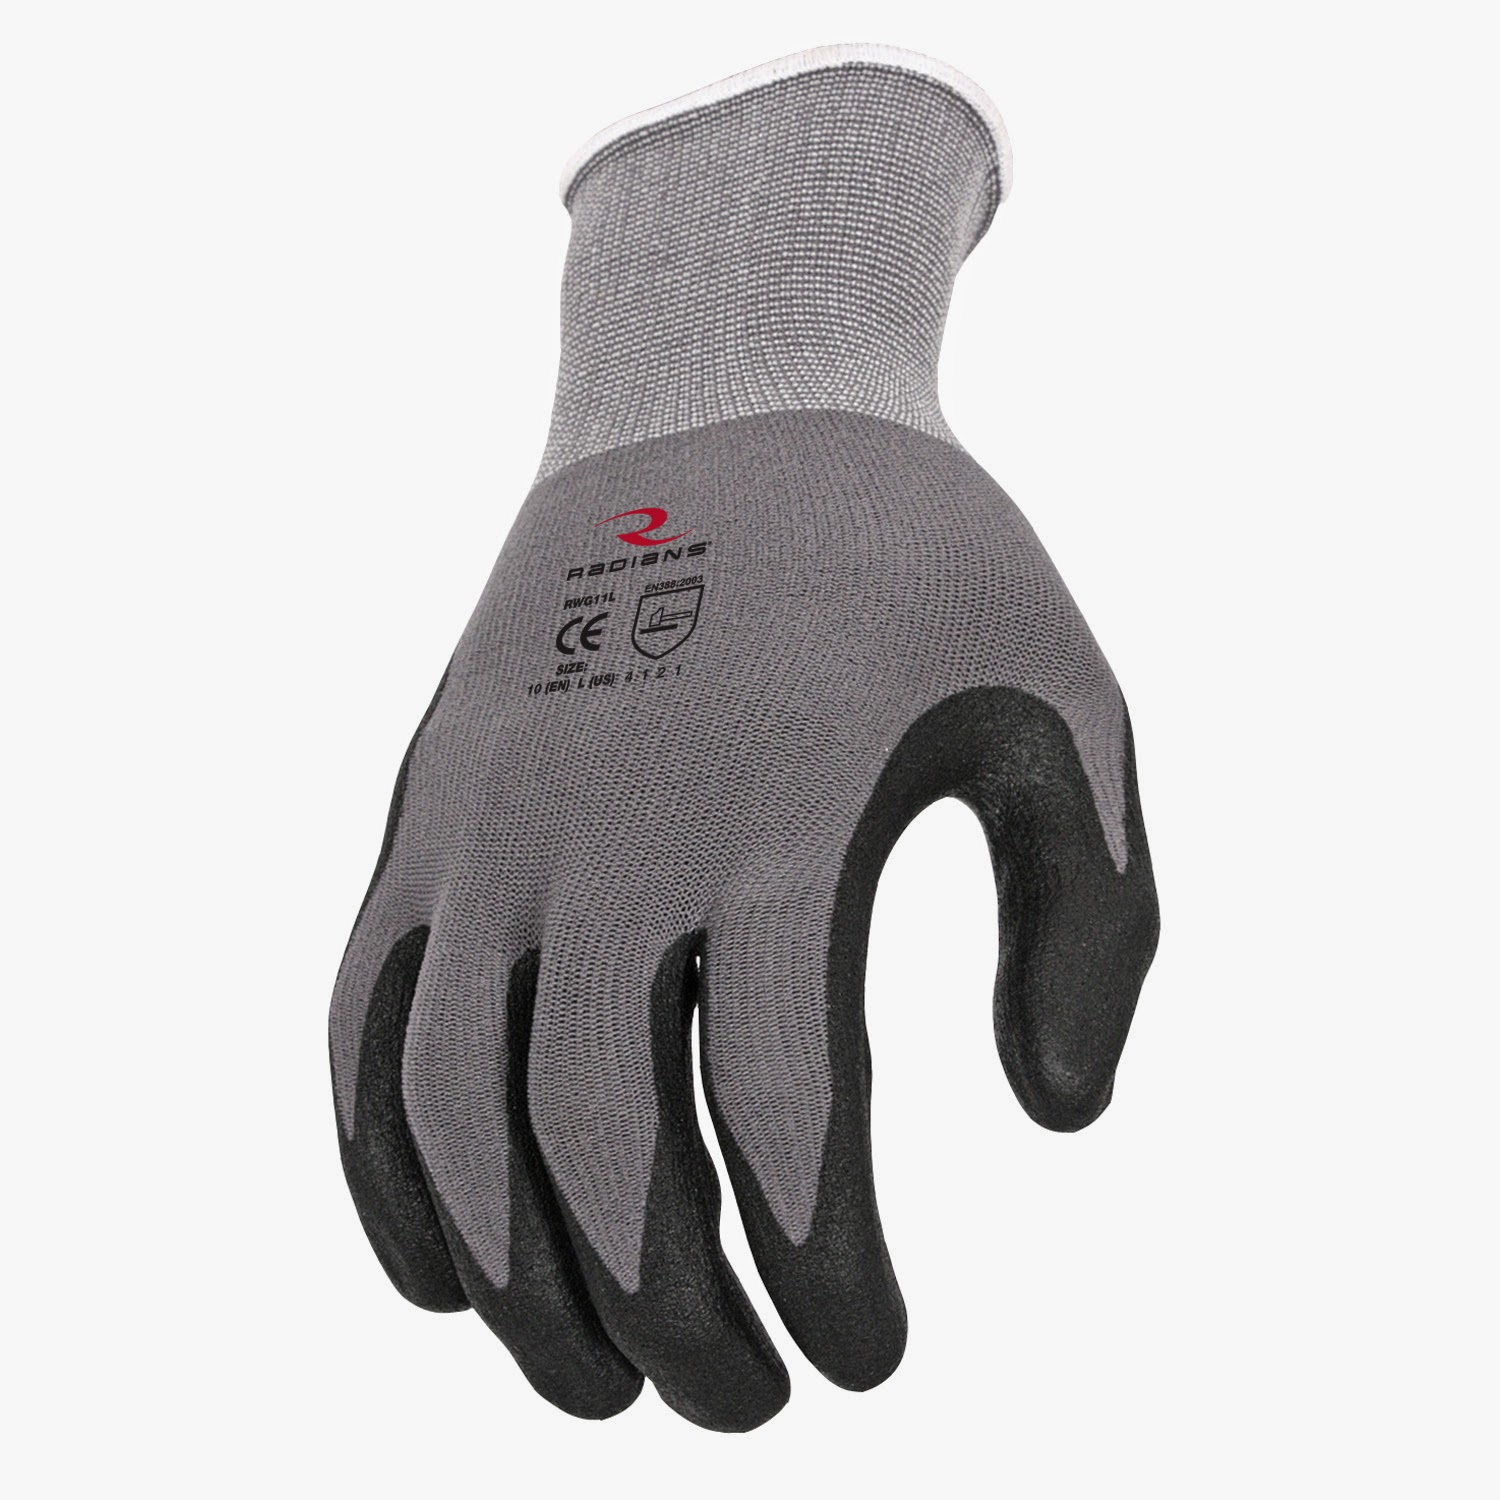 http://www.gloves-online.com/products.php?cat=80